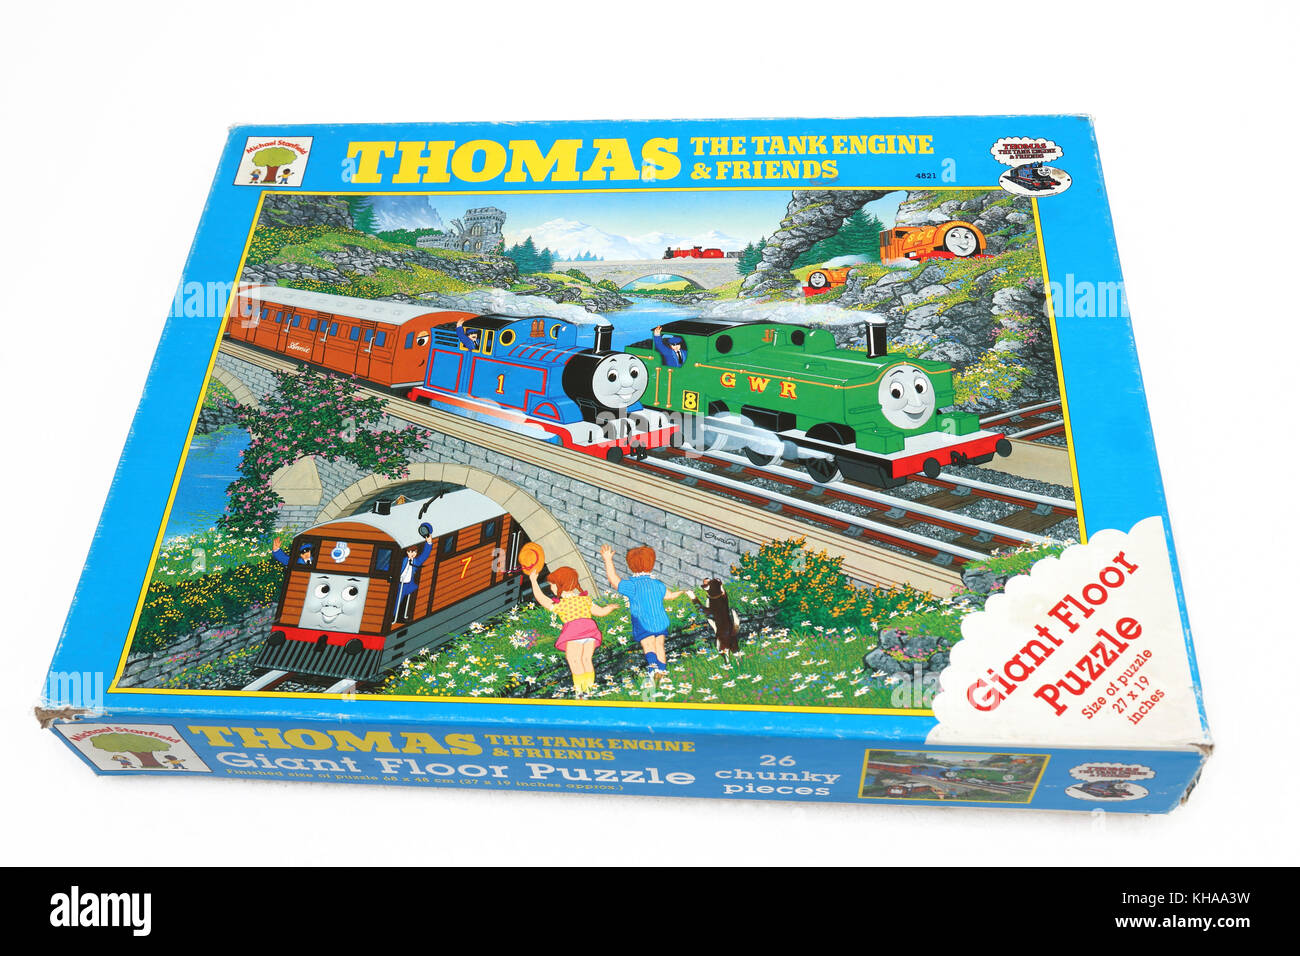 Thomas The Tank Engine And Friends Giant Floor Jigsaw Puzzle Khaa W on Vtec Boy